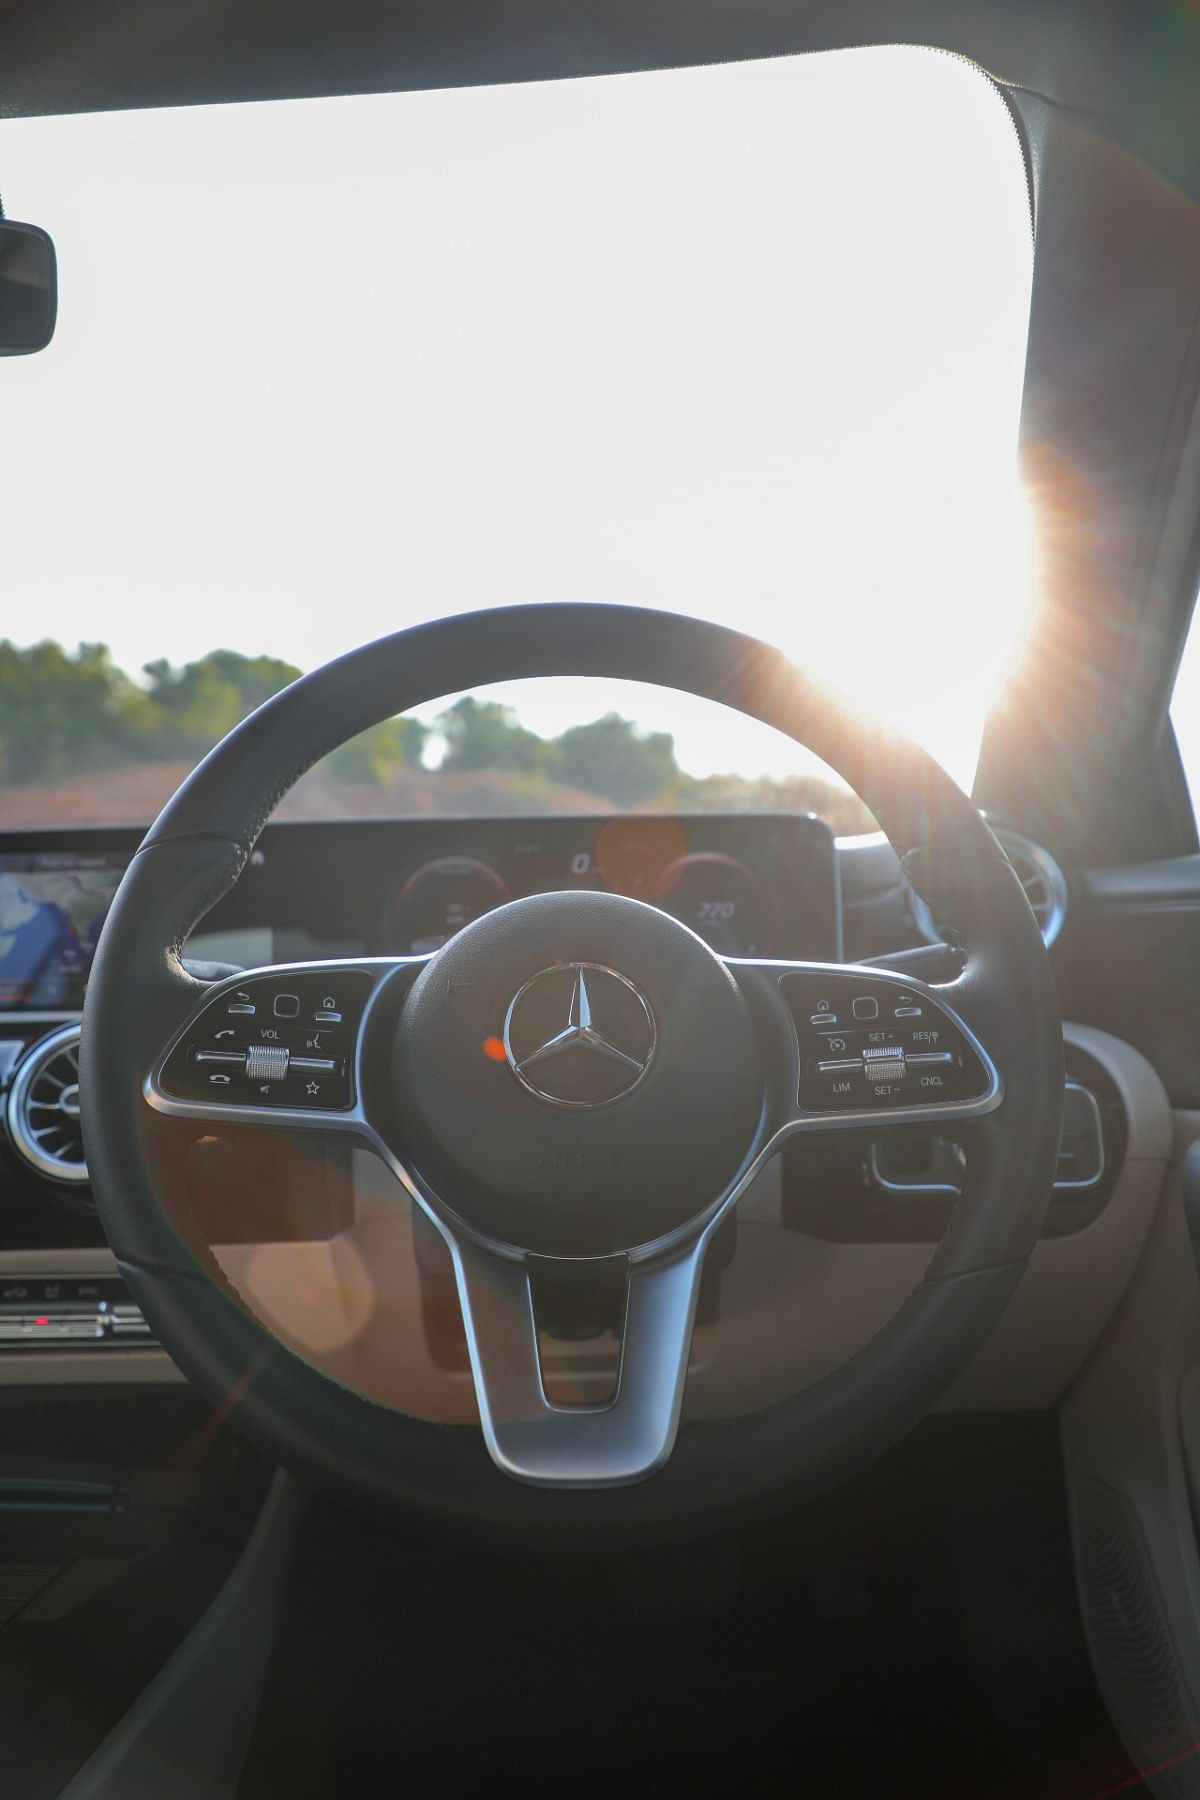 The steering is very nice, with good precision, response and eagerness.